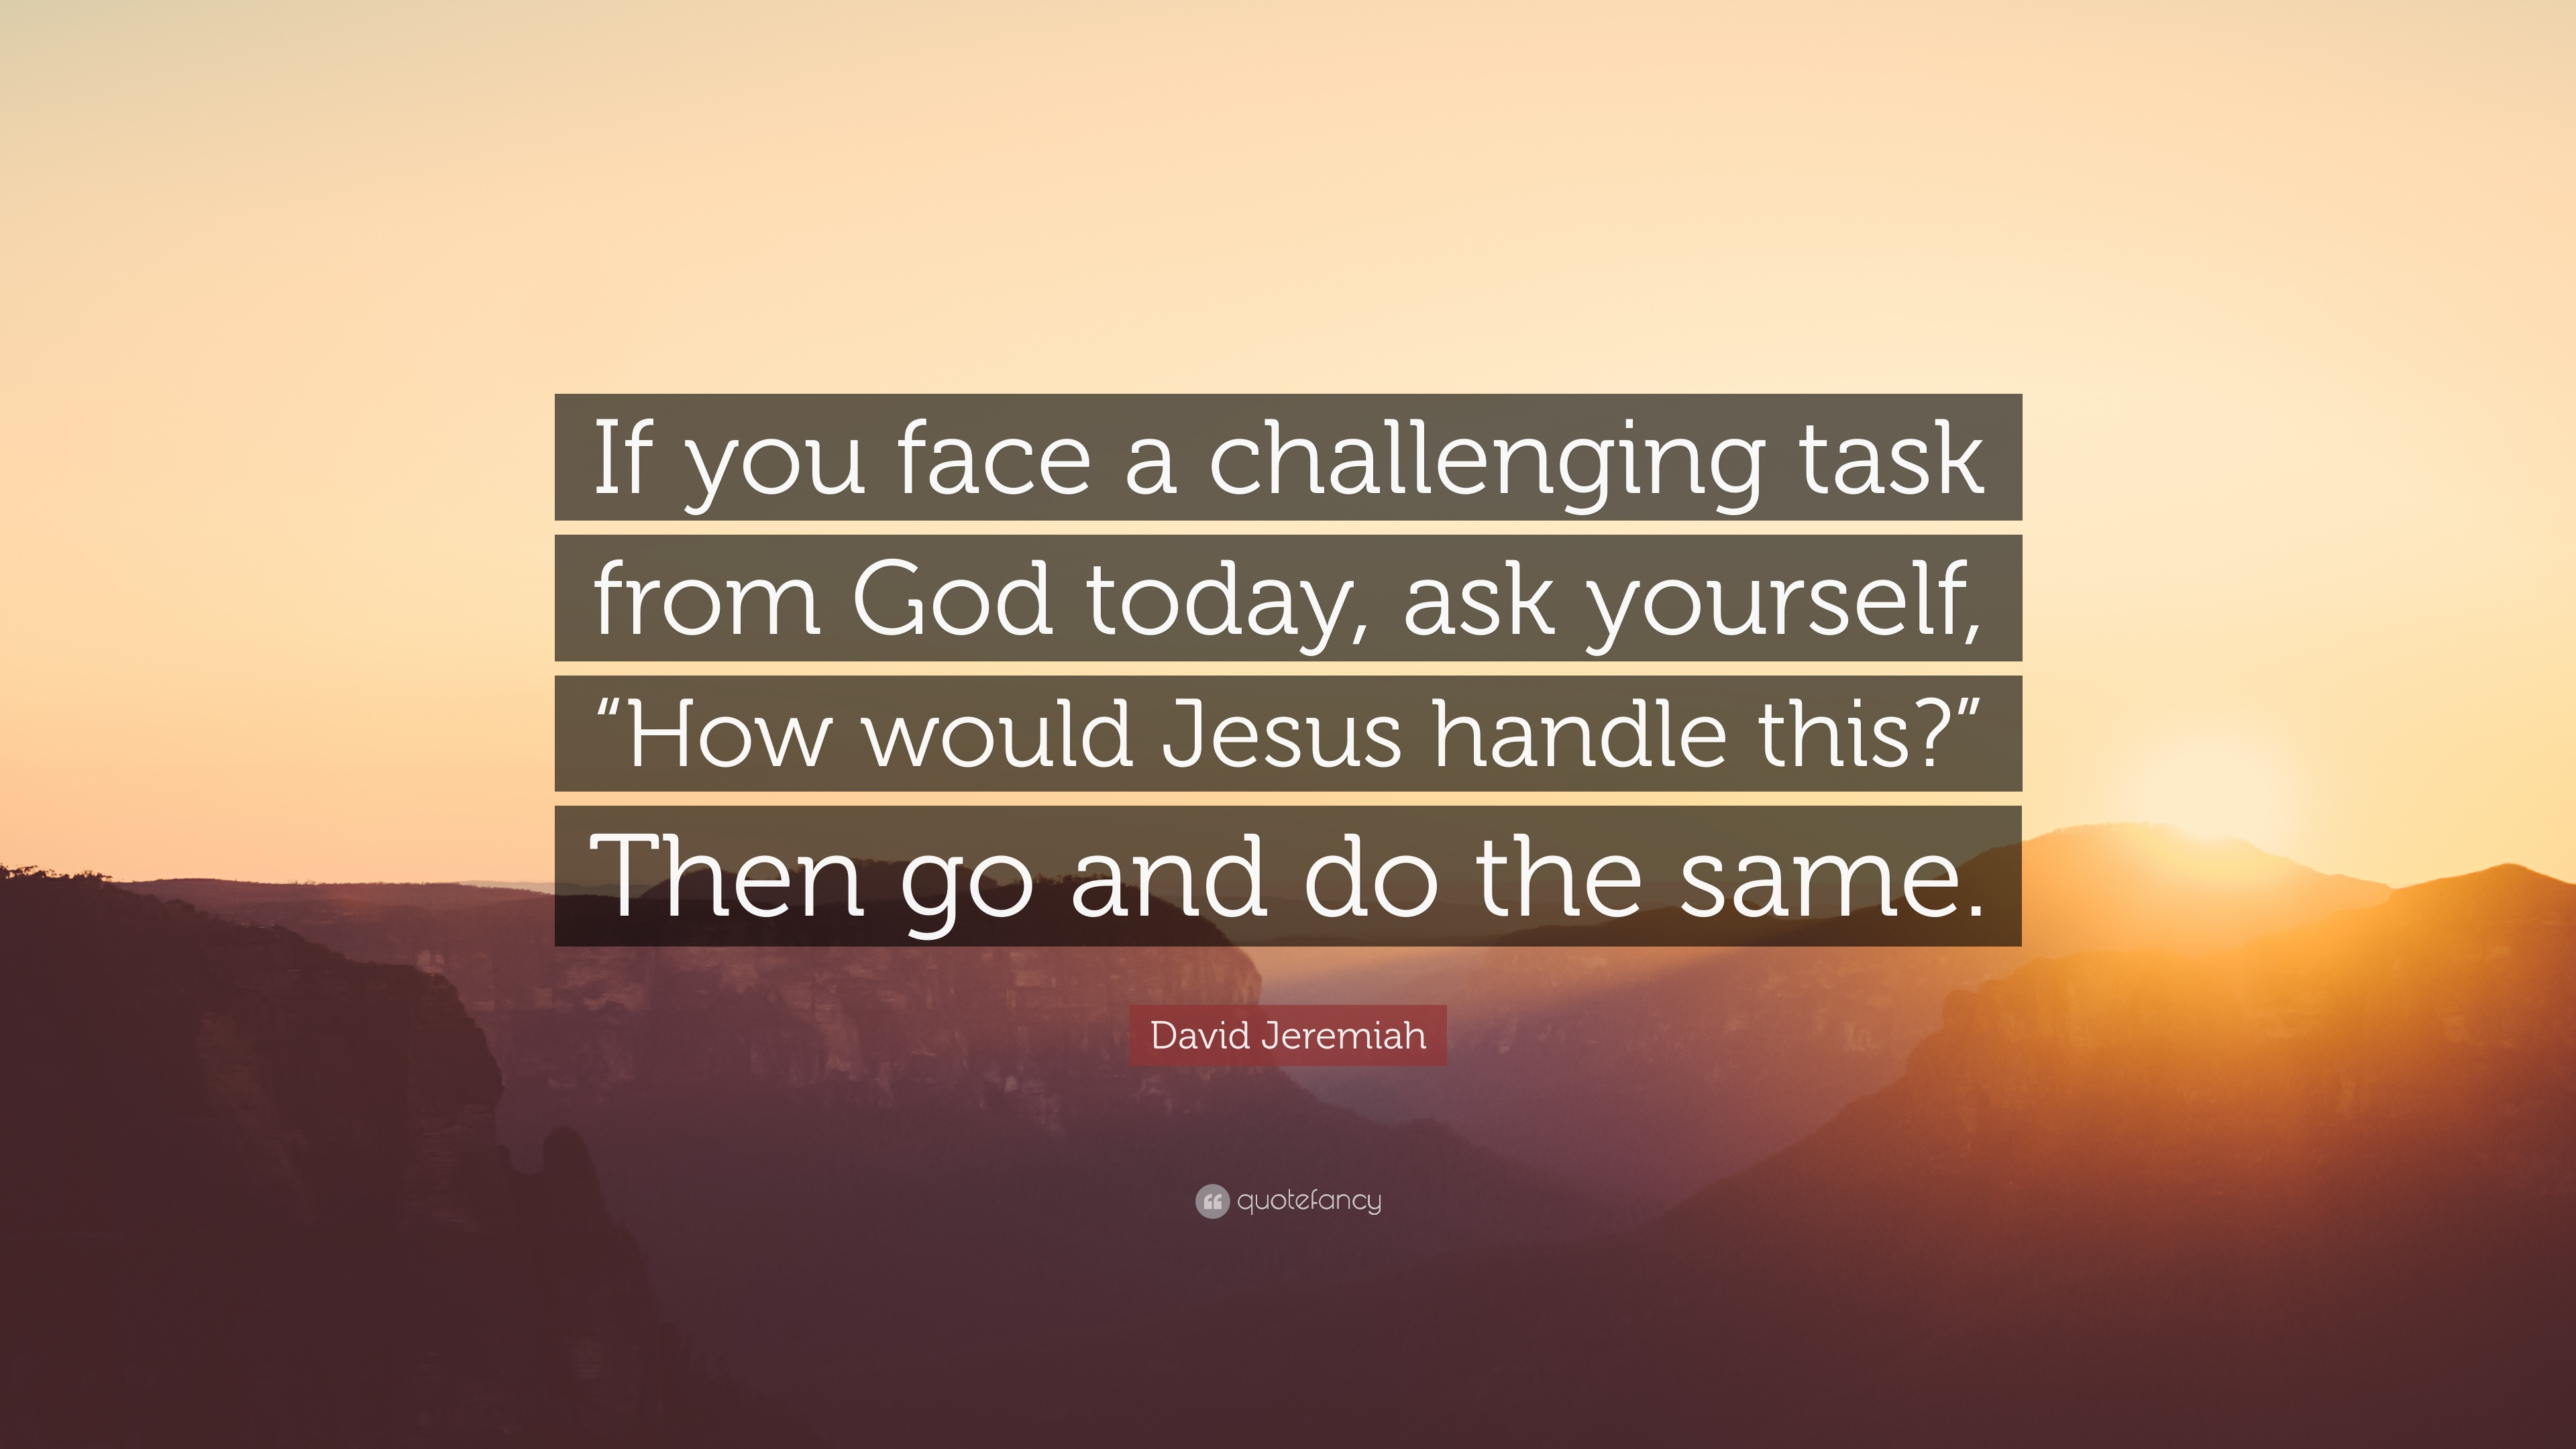 Quotes About Challenges Challenges Quotes 40 Wallpapers  Quotefancy